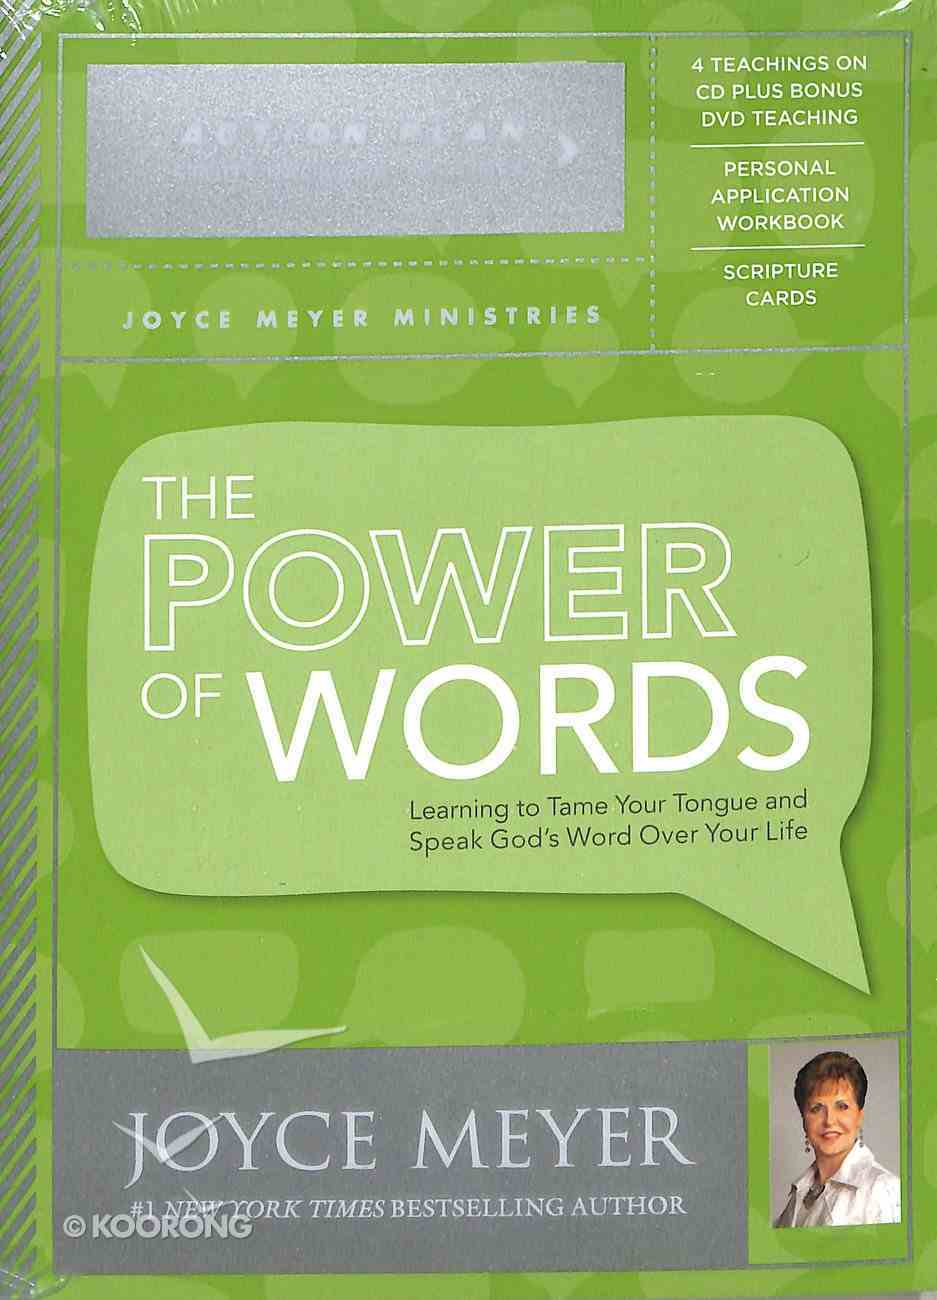 The Power of Words Action Plan (4 Cds + Dvd + Study Guide + Scripture Cards) Pack